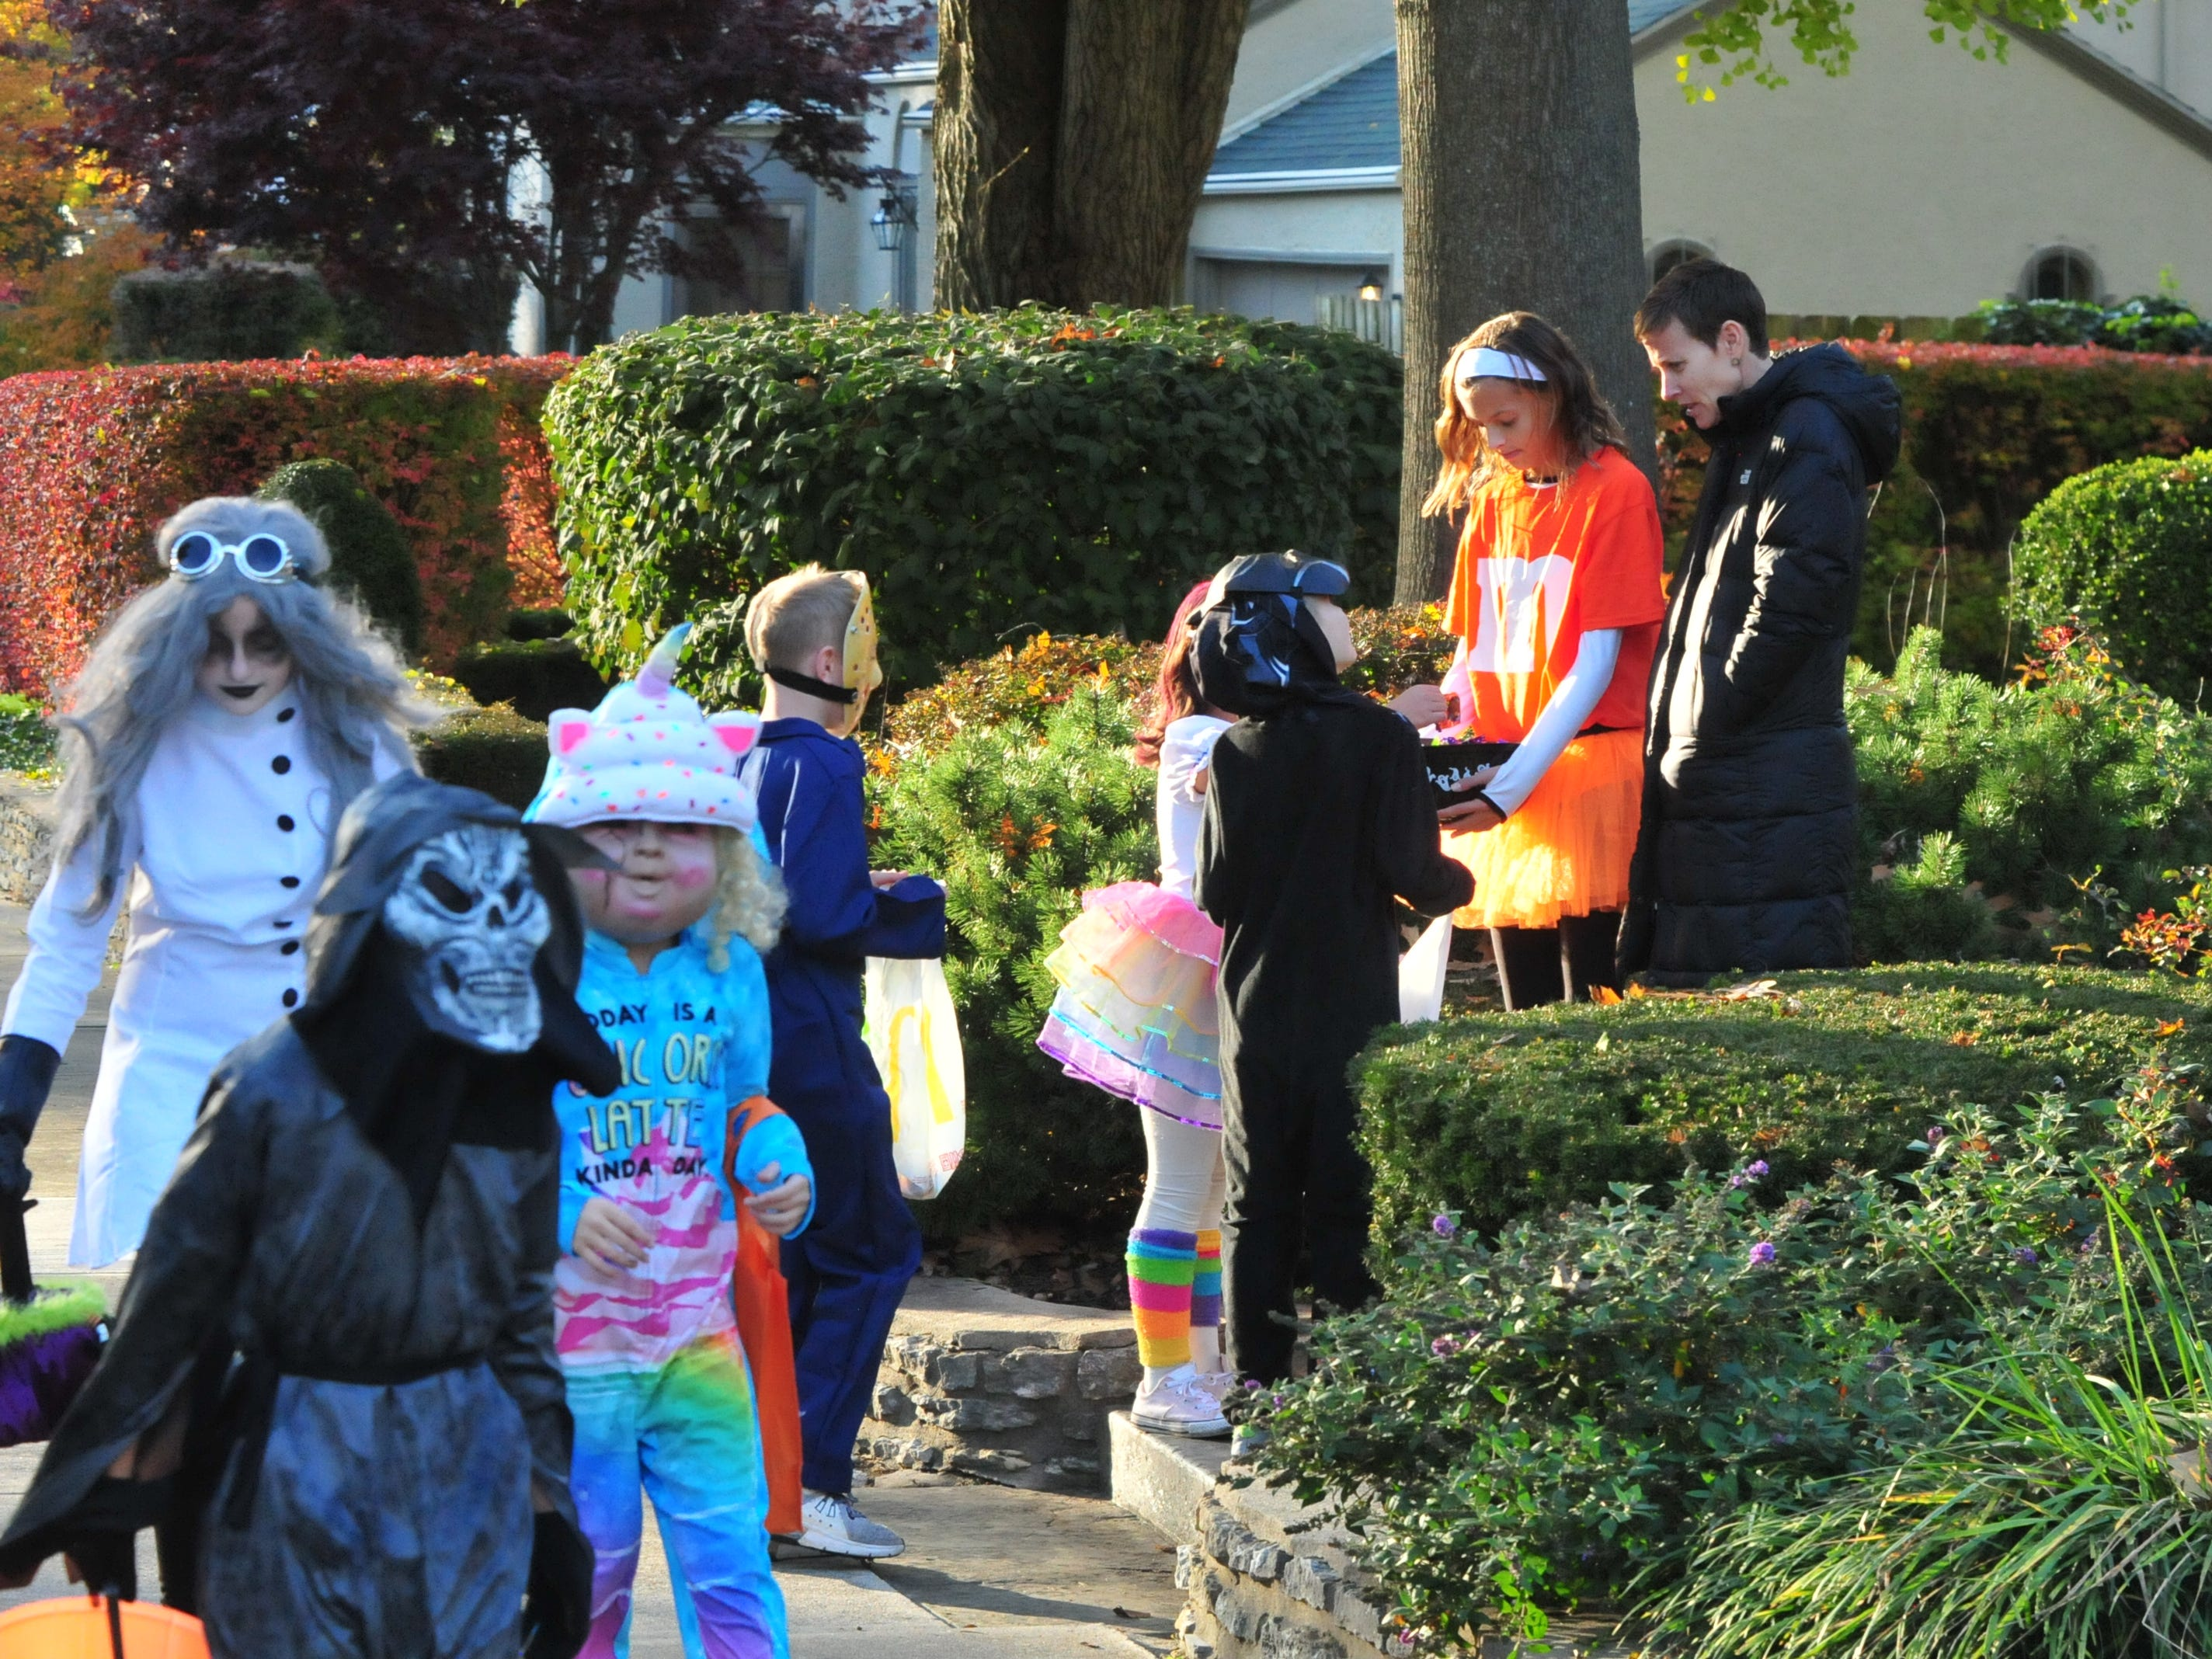 Children went trick-or-treating Saturday in Richmond after weather delayed the annual festivities for three days.